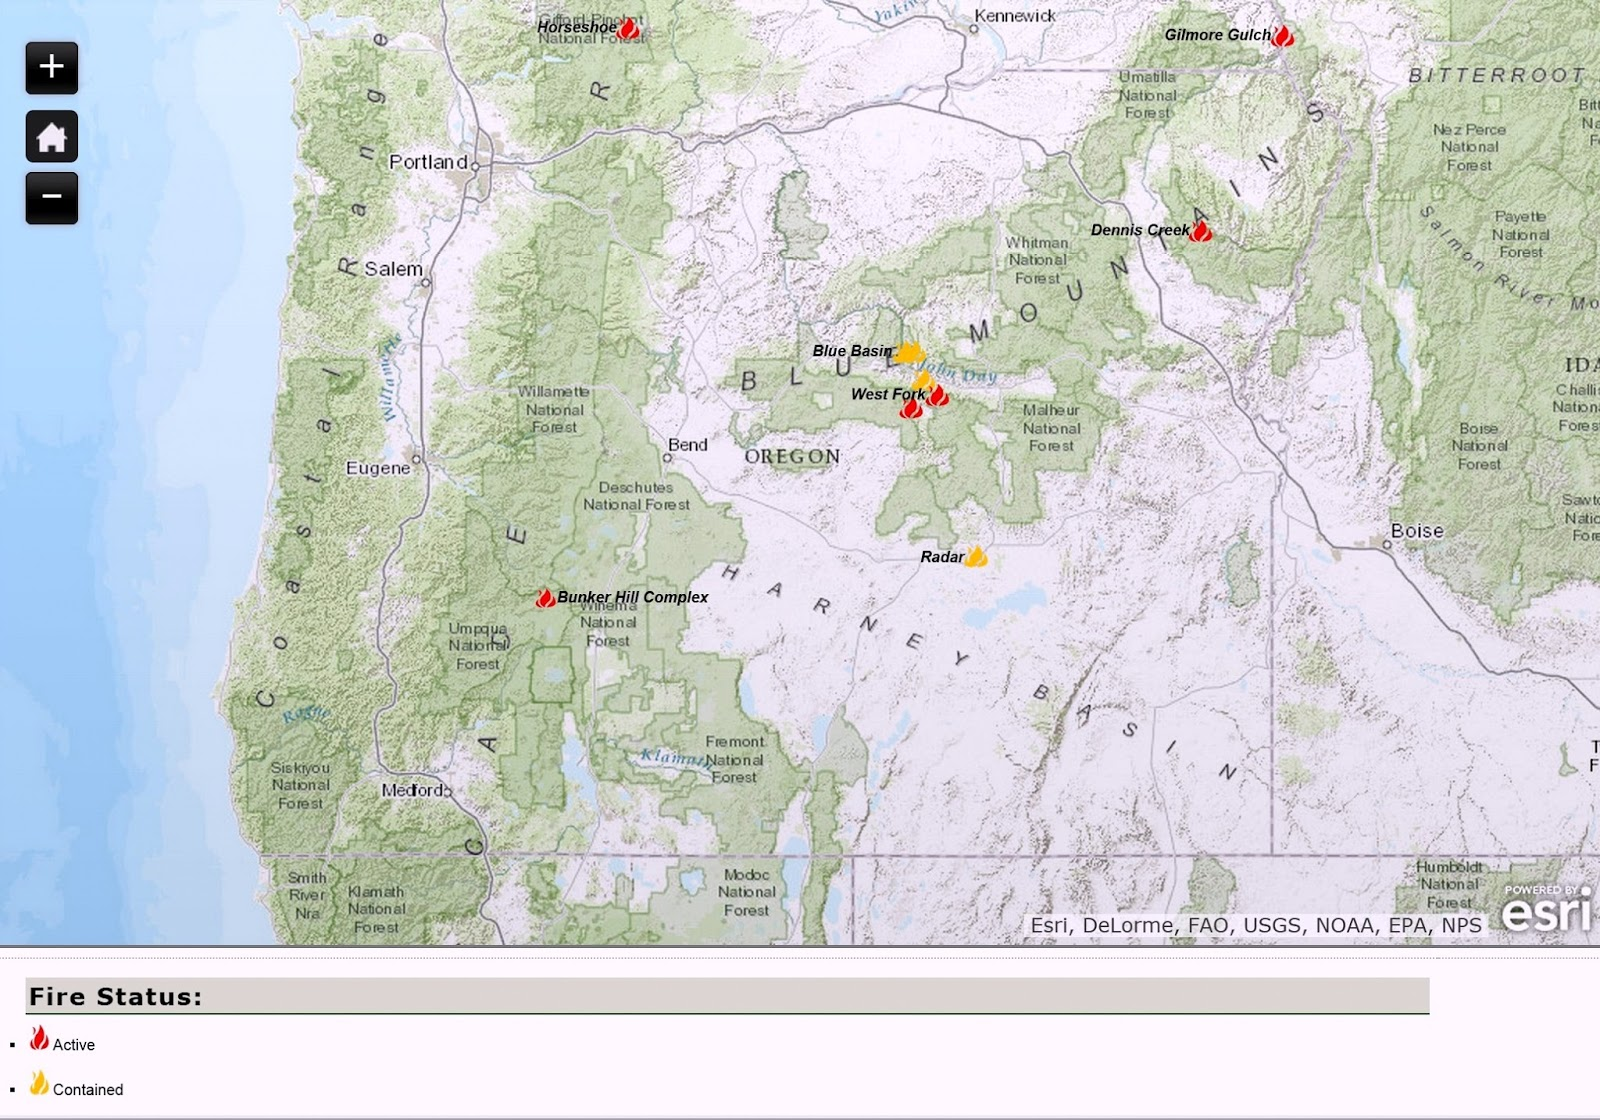 Spokane Complex Fire Map.Oregon Smoke Information Current Oregon Wildfire Map For July 8